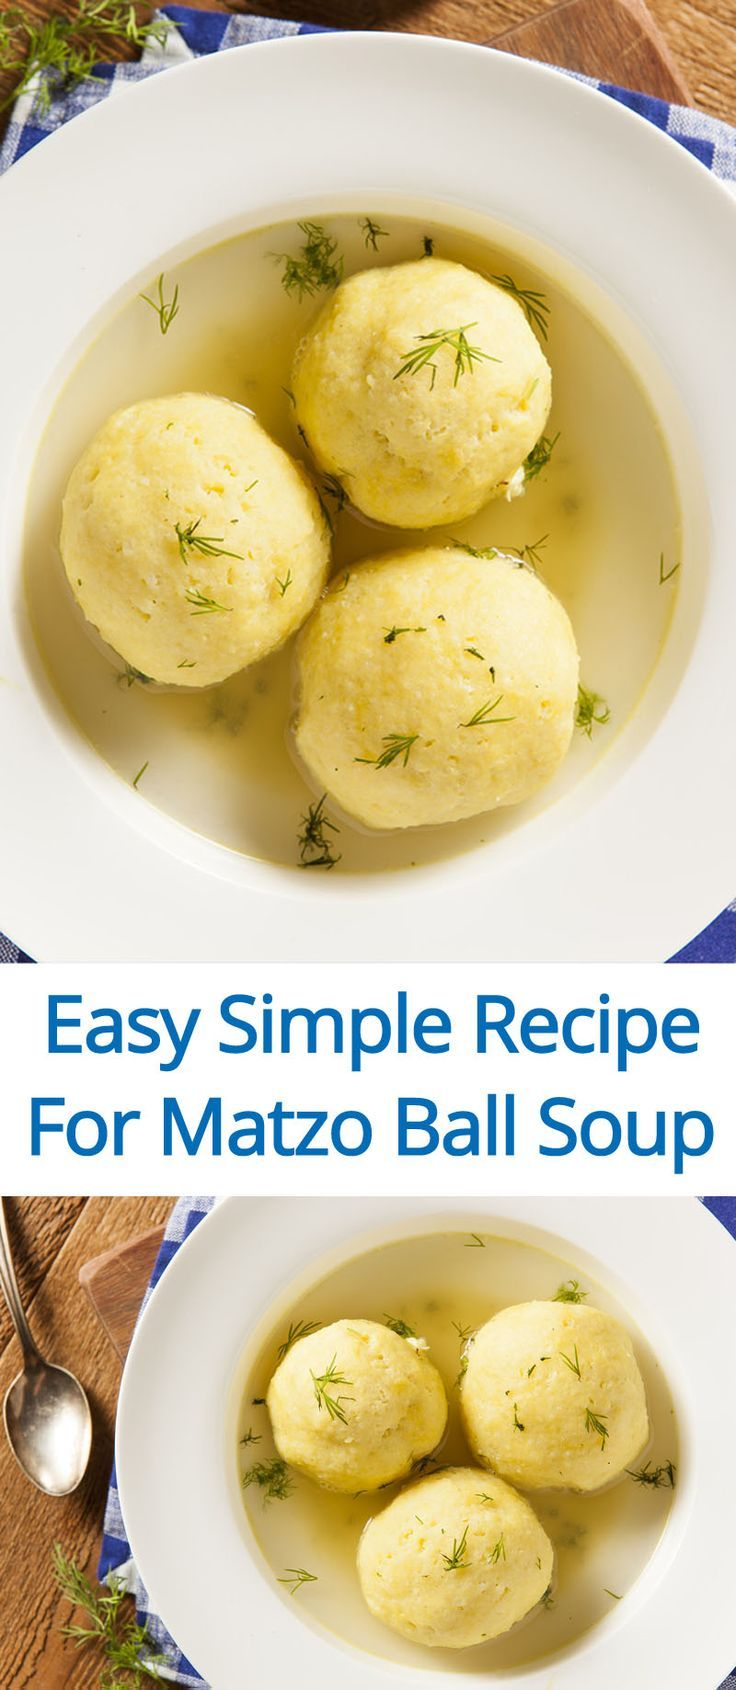 Easy matzo ball soup recipe perfect for beginners from food easy matzo ball soup recipe forumfinder Image collections